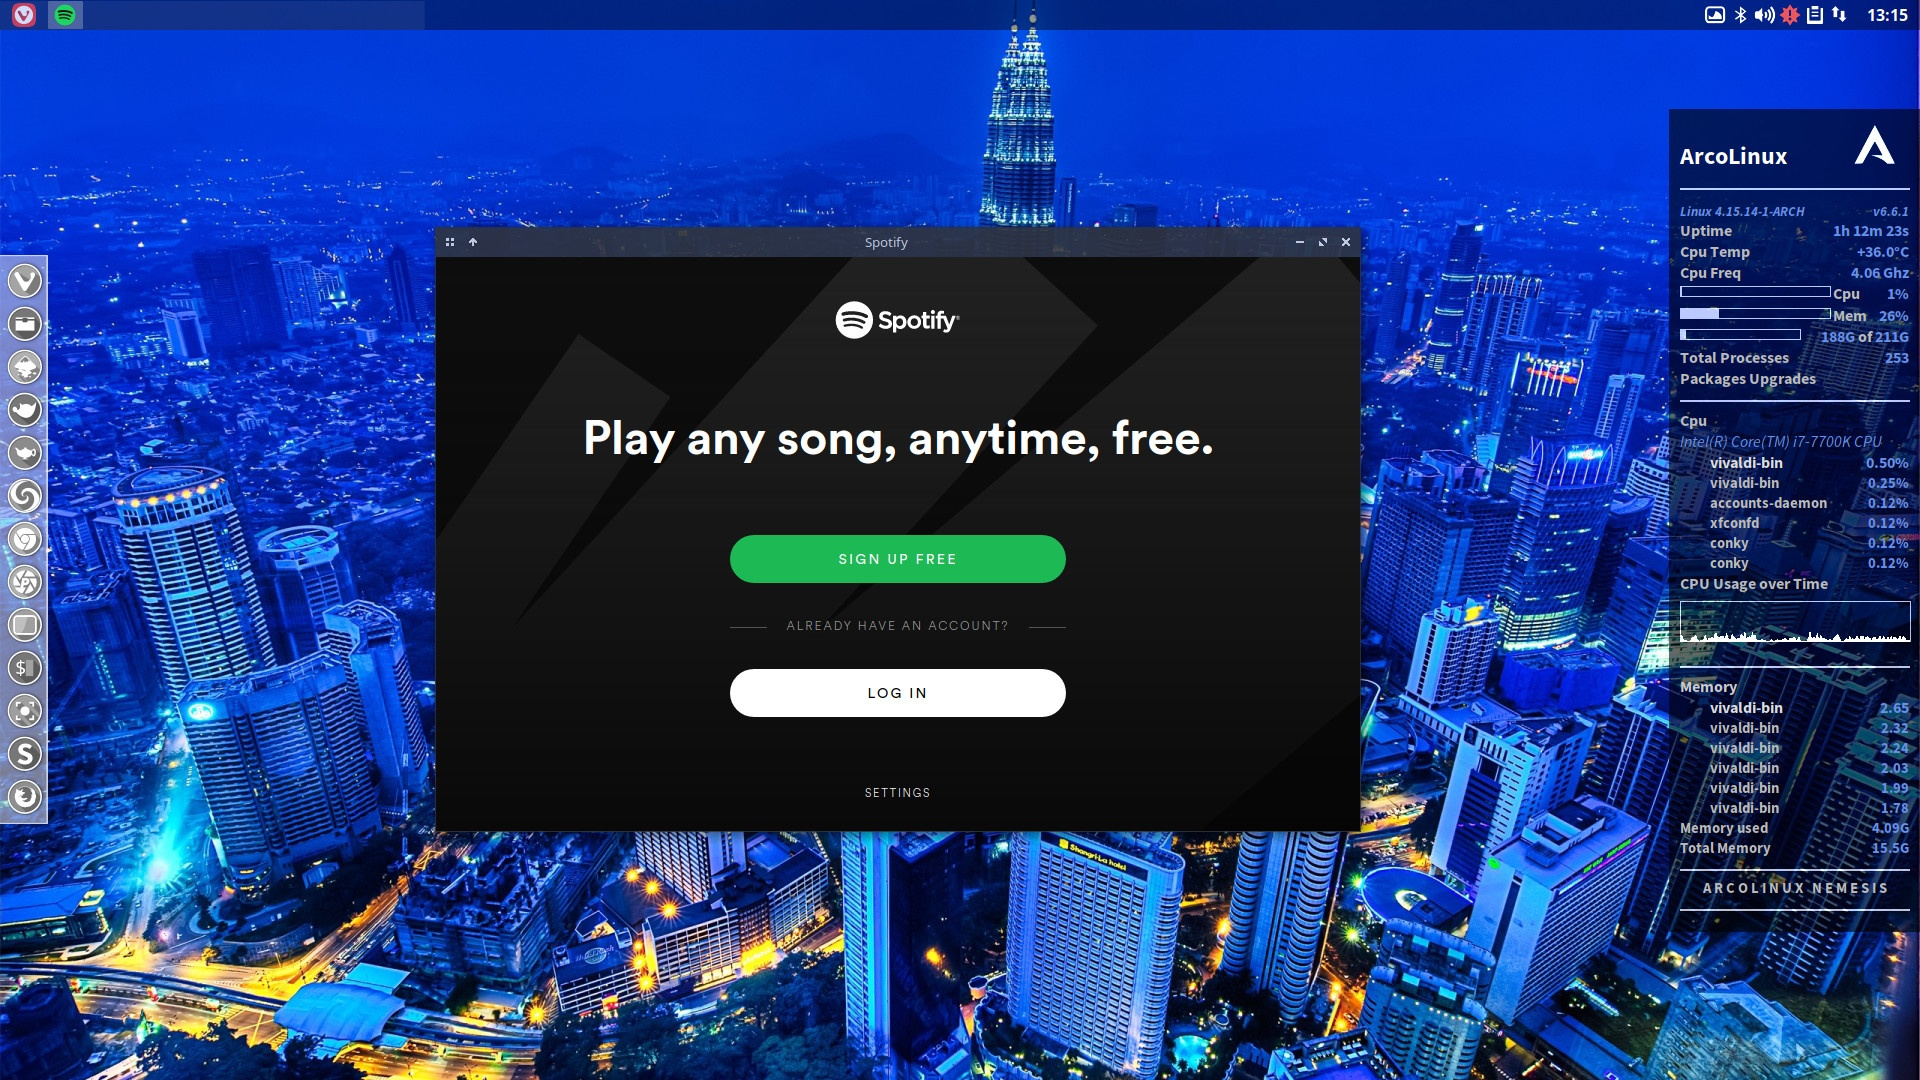 Fixing the pkgbuild of spotify or any other application